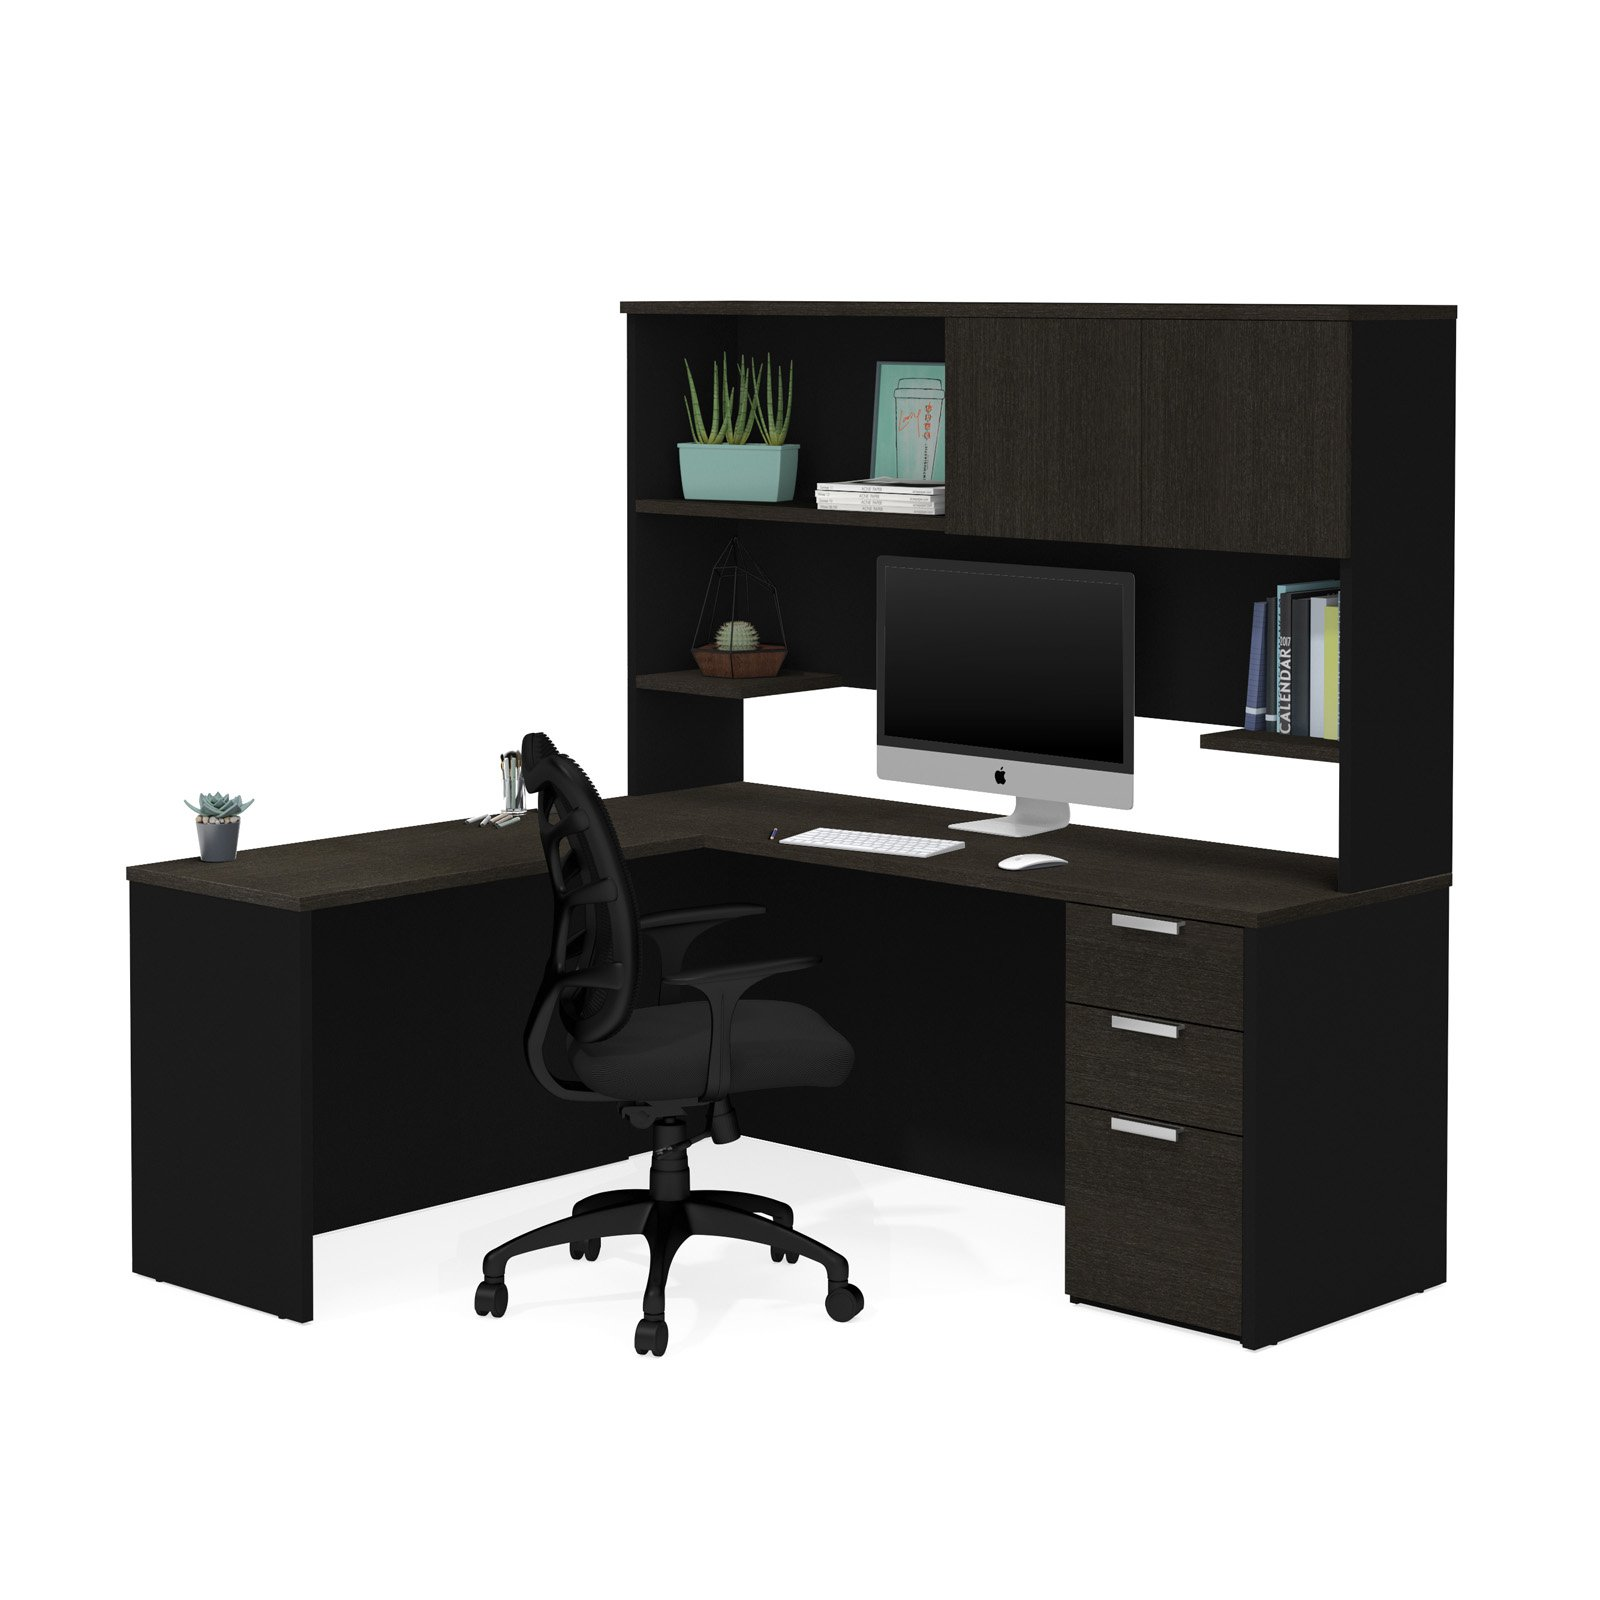 Pro-Concept Plus L-Desk with Hutch in Deep Grey & Black